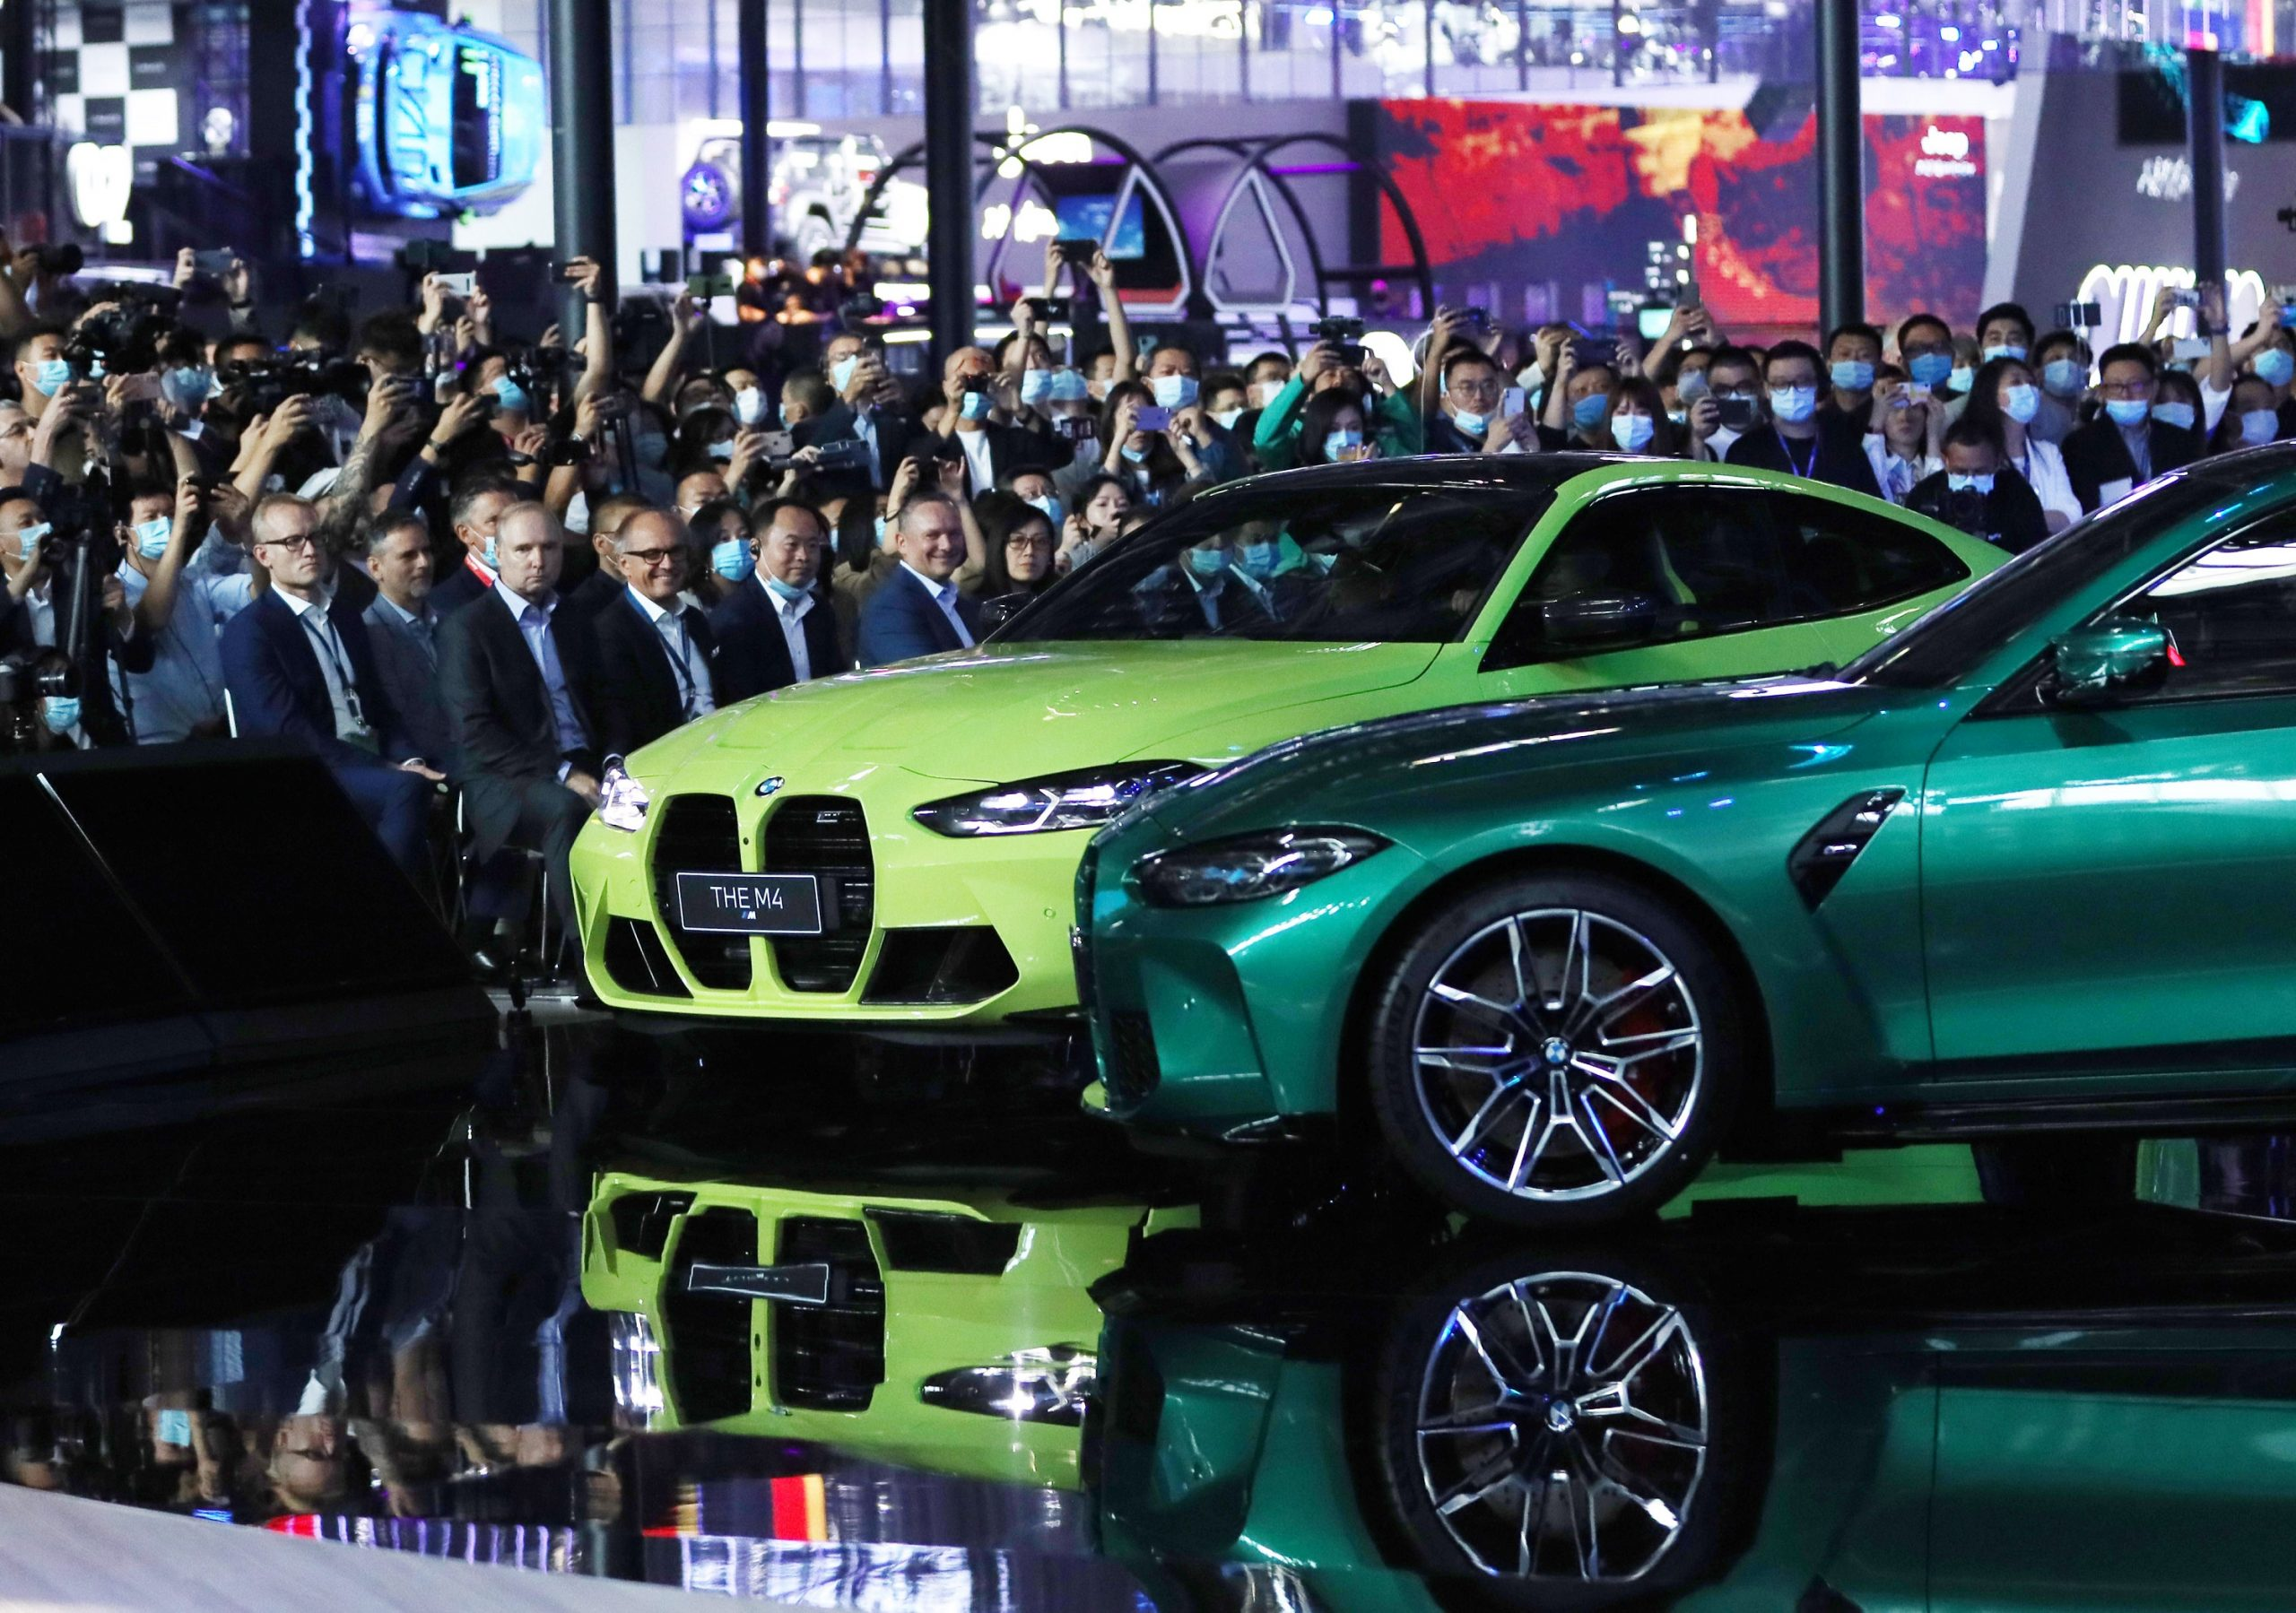 A pair of BMW M3 and M4 sports cars sporting the iconic BMW kidney grille at their debut in China, shot from the front 1/4 angle